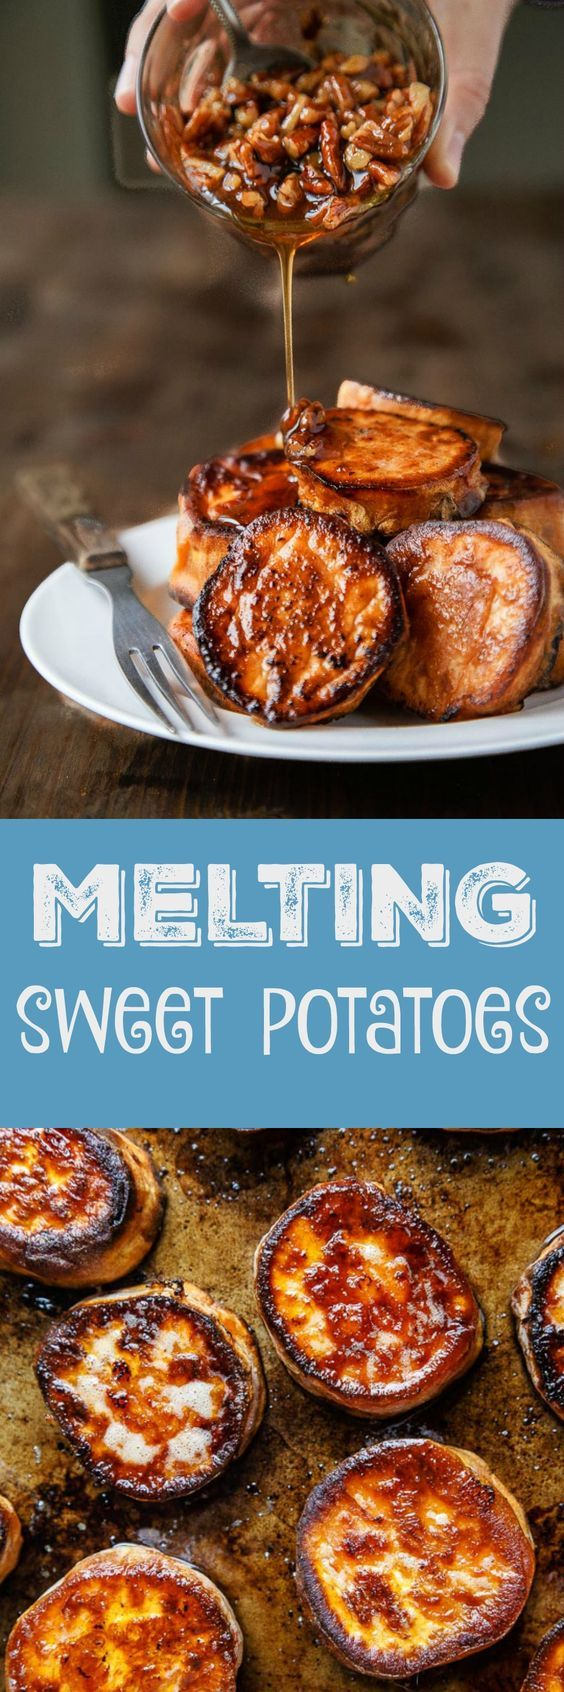 Melting Sweet Potatoes | Potatoes Are Anything but Boring. Here Are 22 of the Most Incredible Ways to Eat Them.